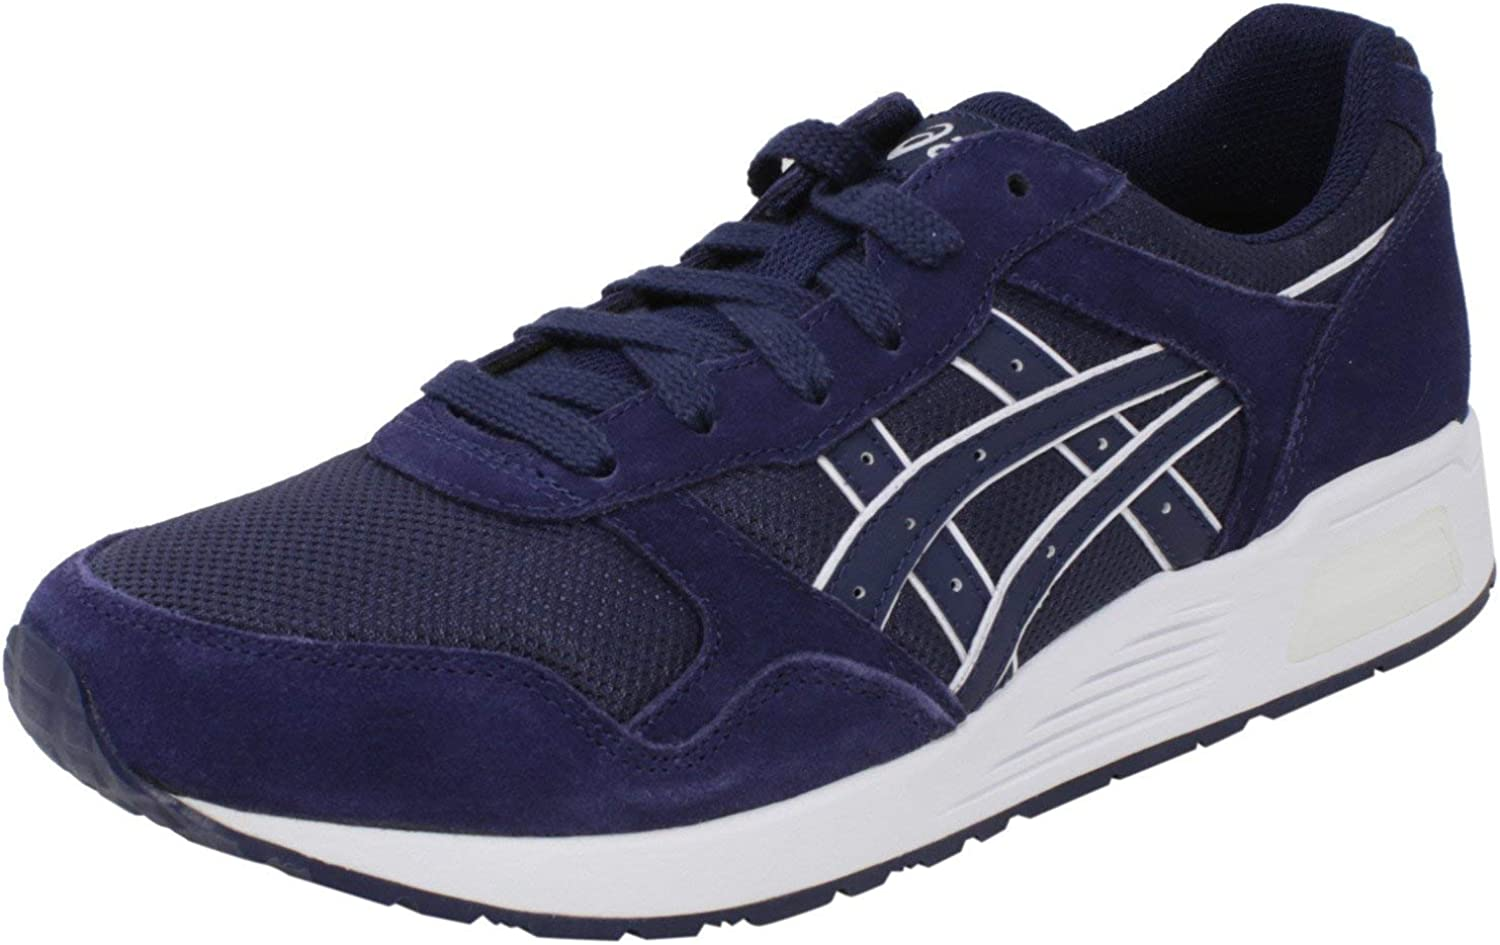 ASICS Mens Lyte-Trainer Casual Sneakers,